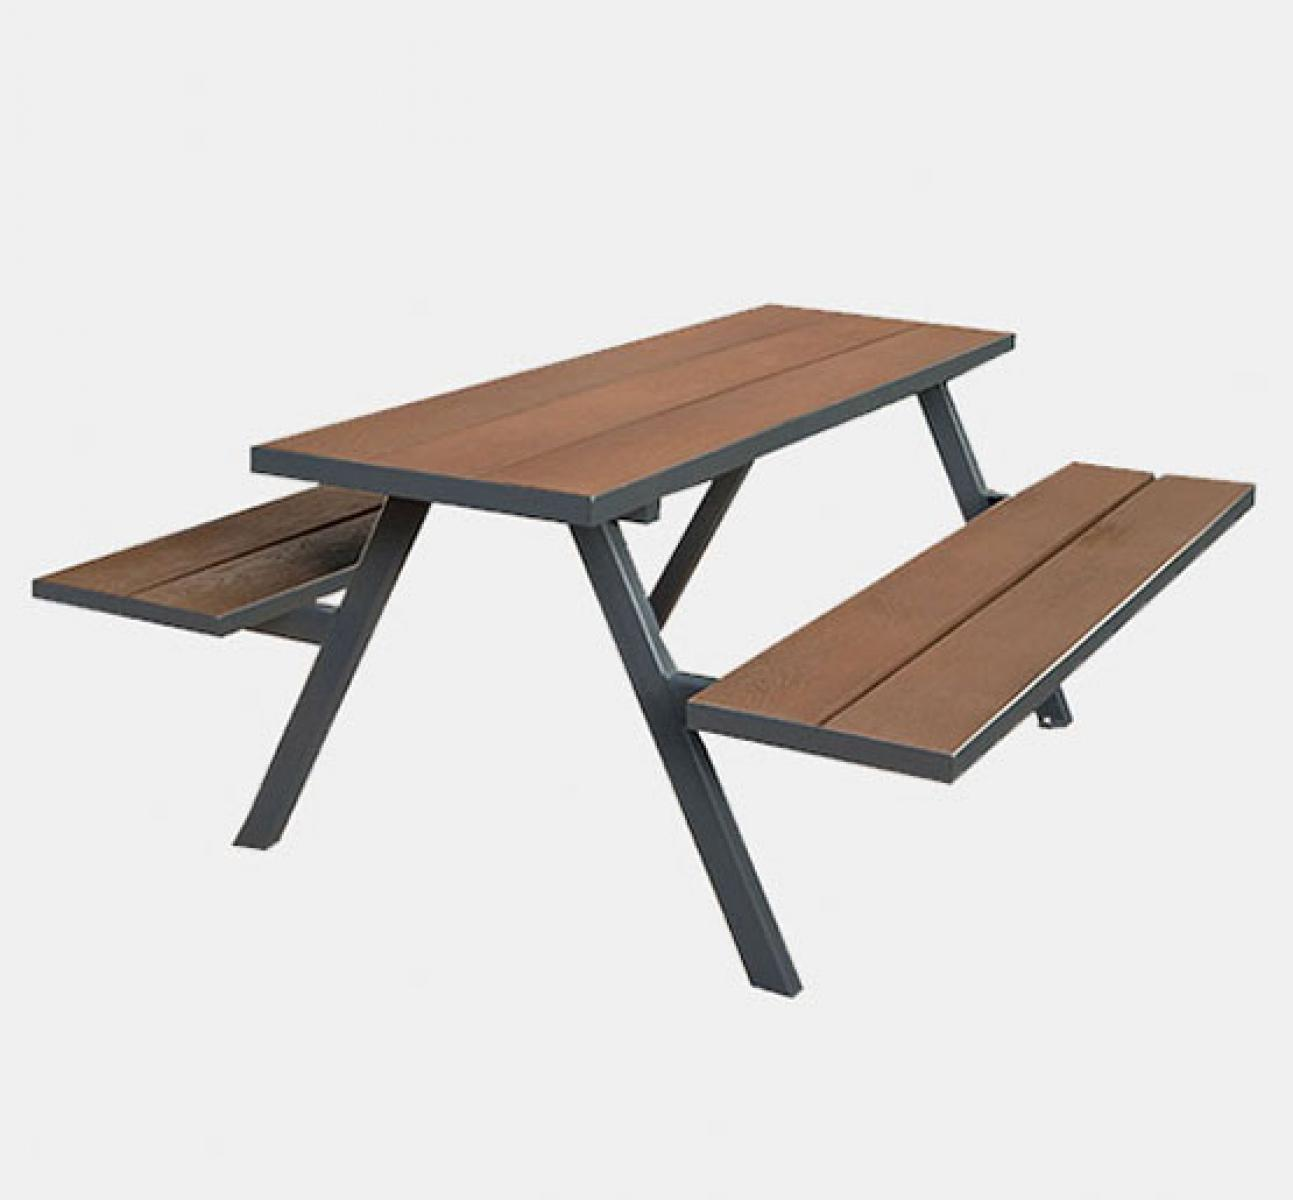 Mill A Frame Picnic Bench Coppered Uhs